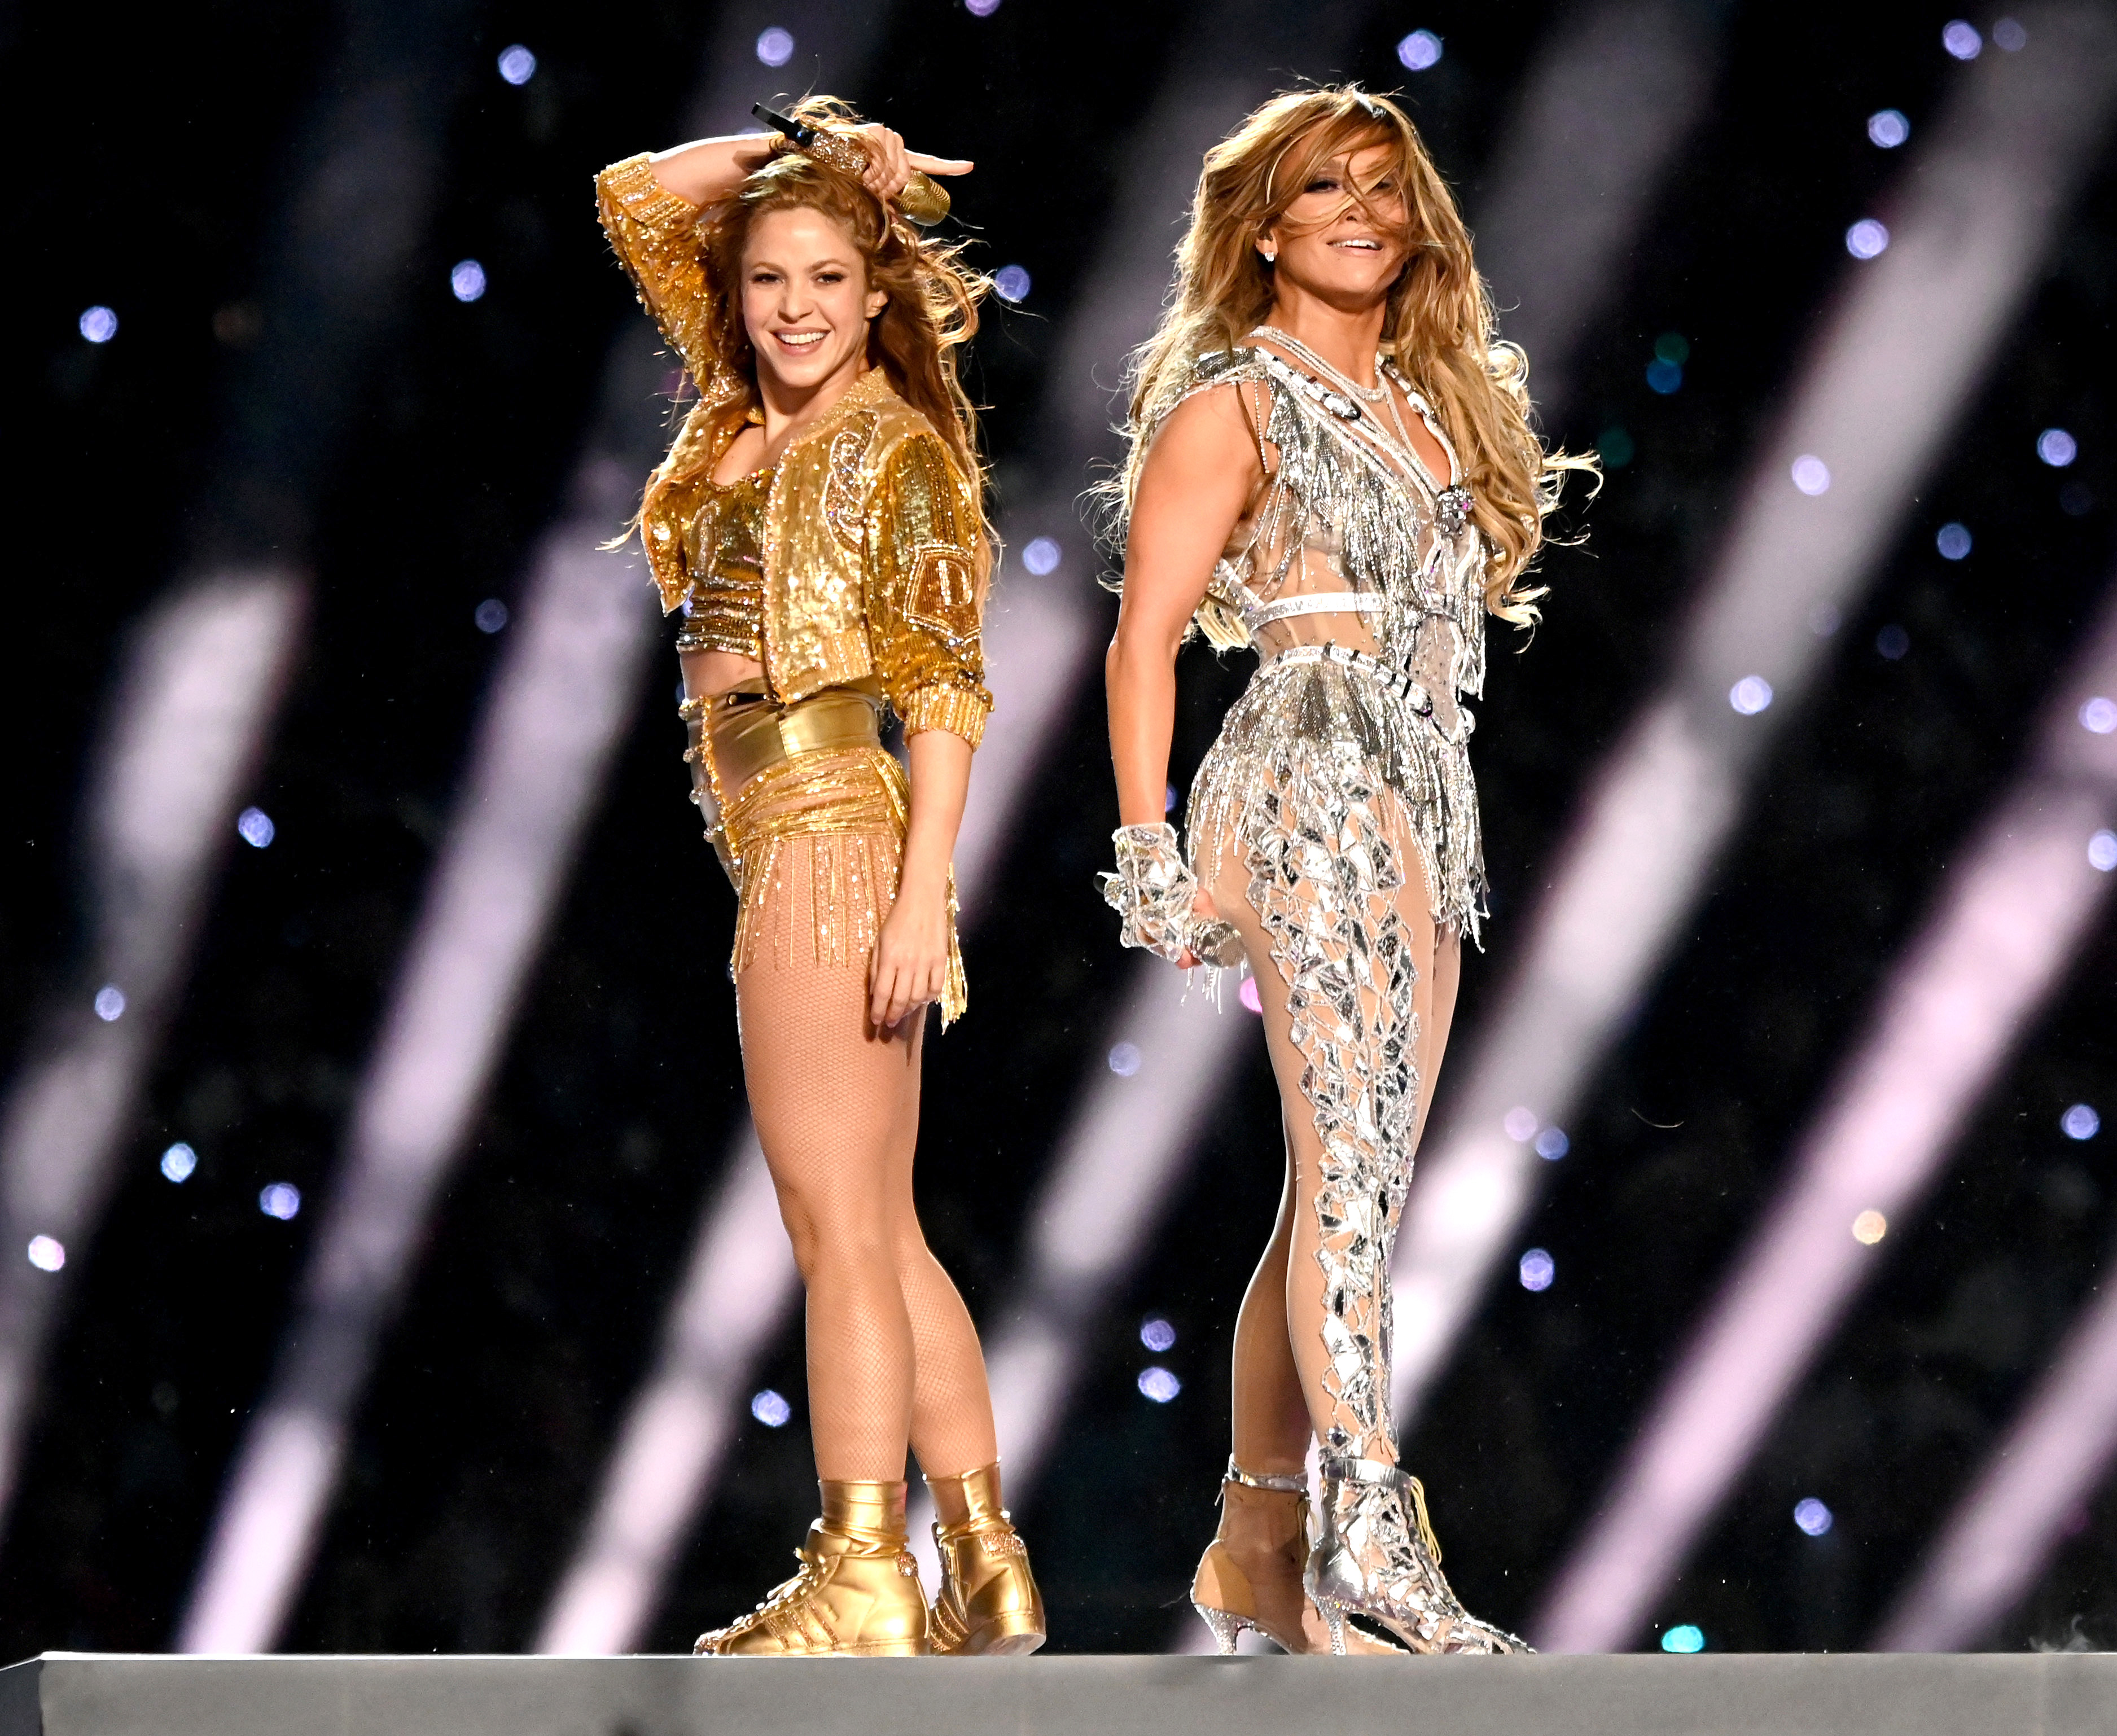 Jennifer Lopez and Shakira Criticized for Being Too Sexy at Super Bowl